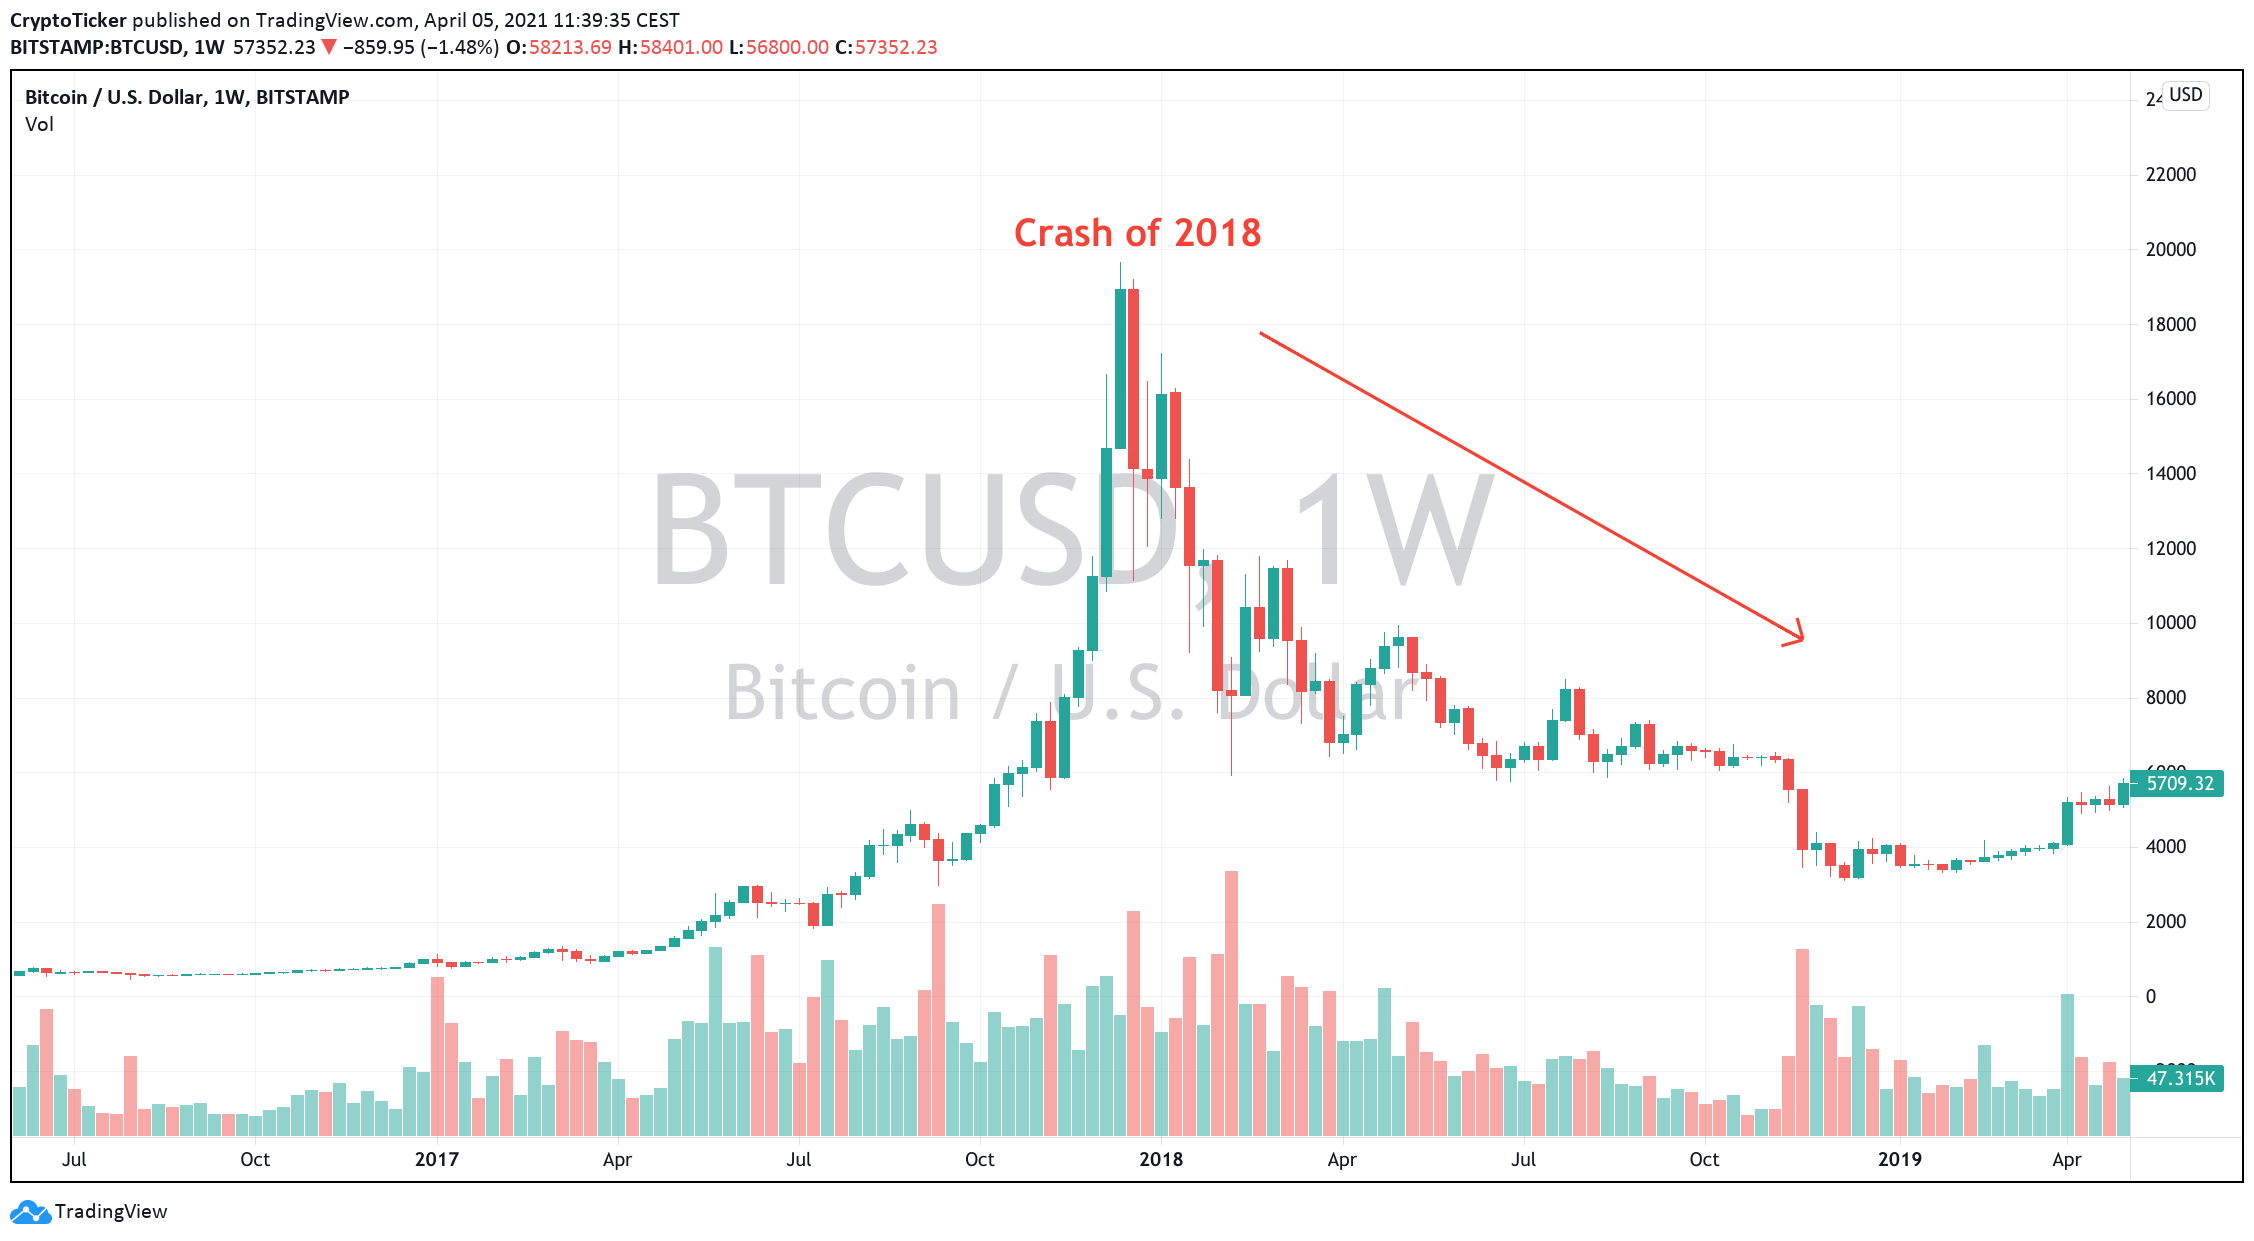 BTC/USD 1-week chart showing the crash of 2018